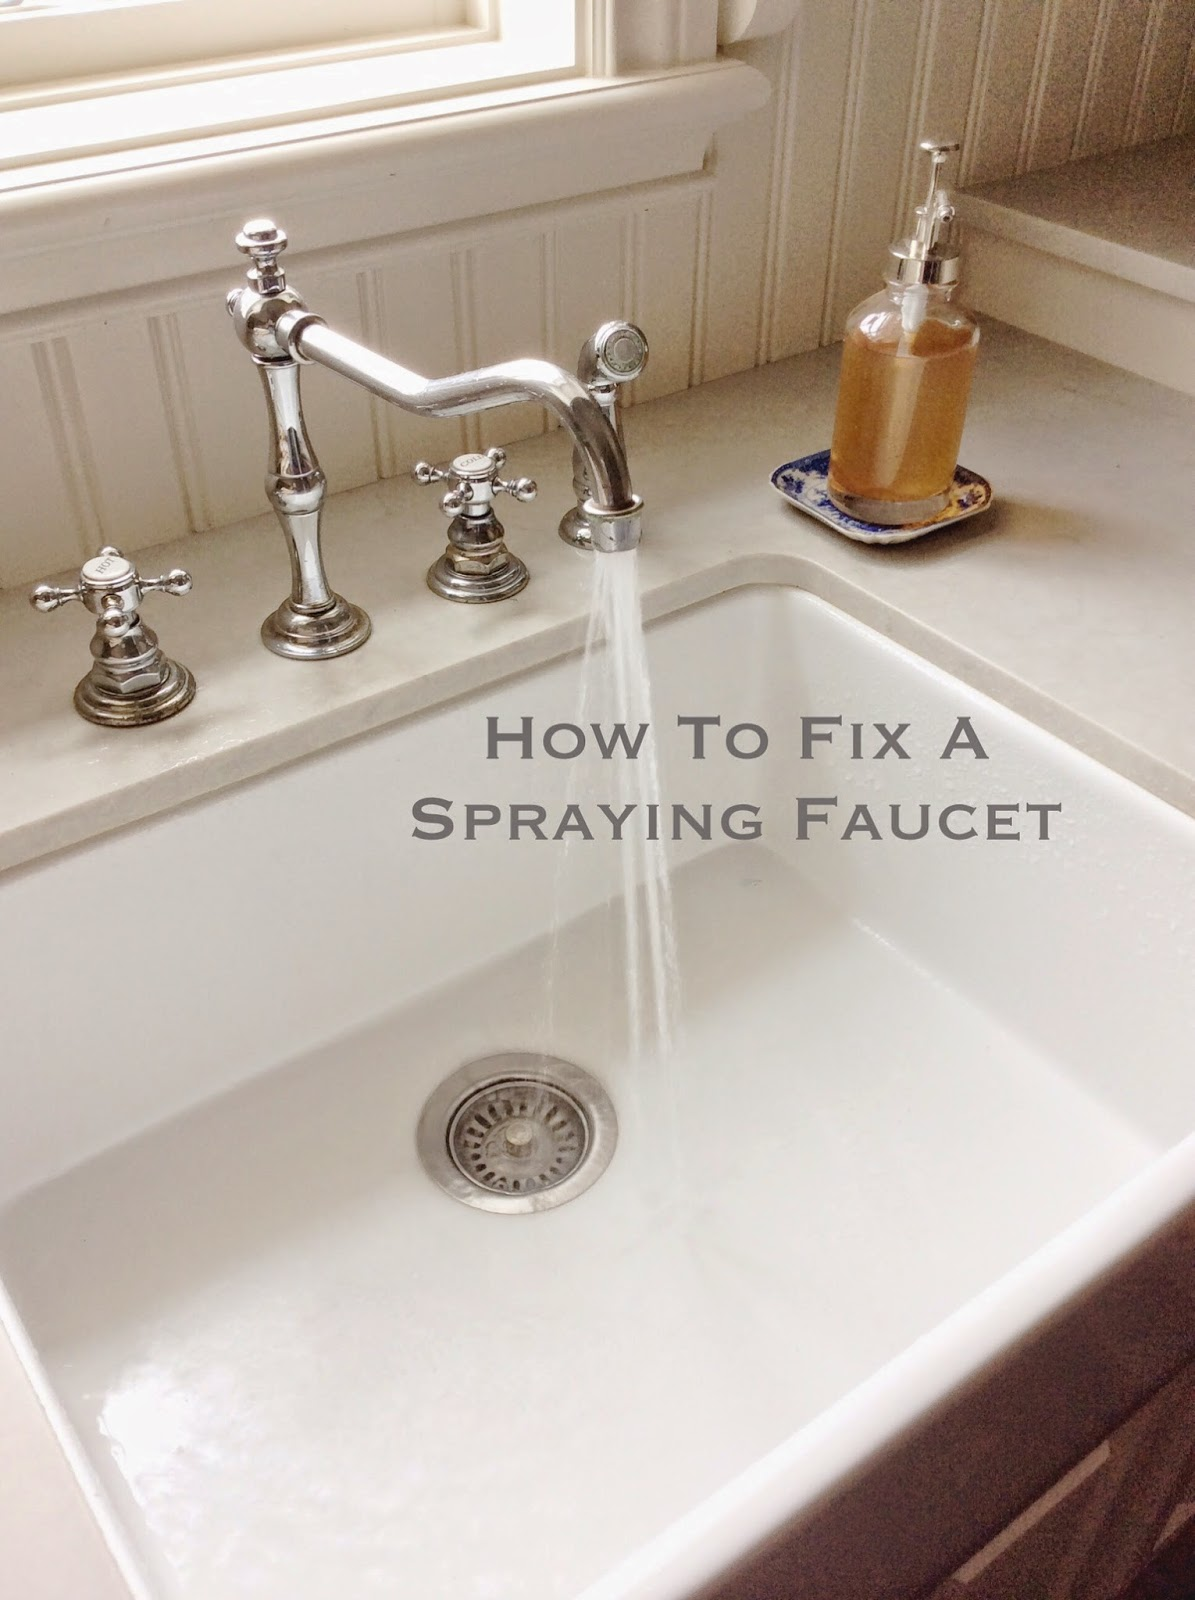 Eleven Gables: How To Fix a Spraying Faucet